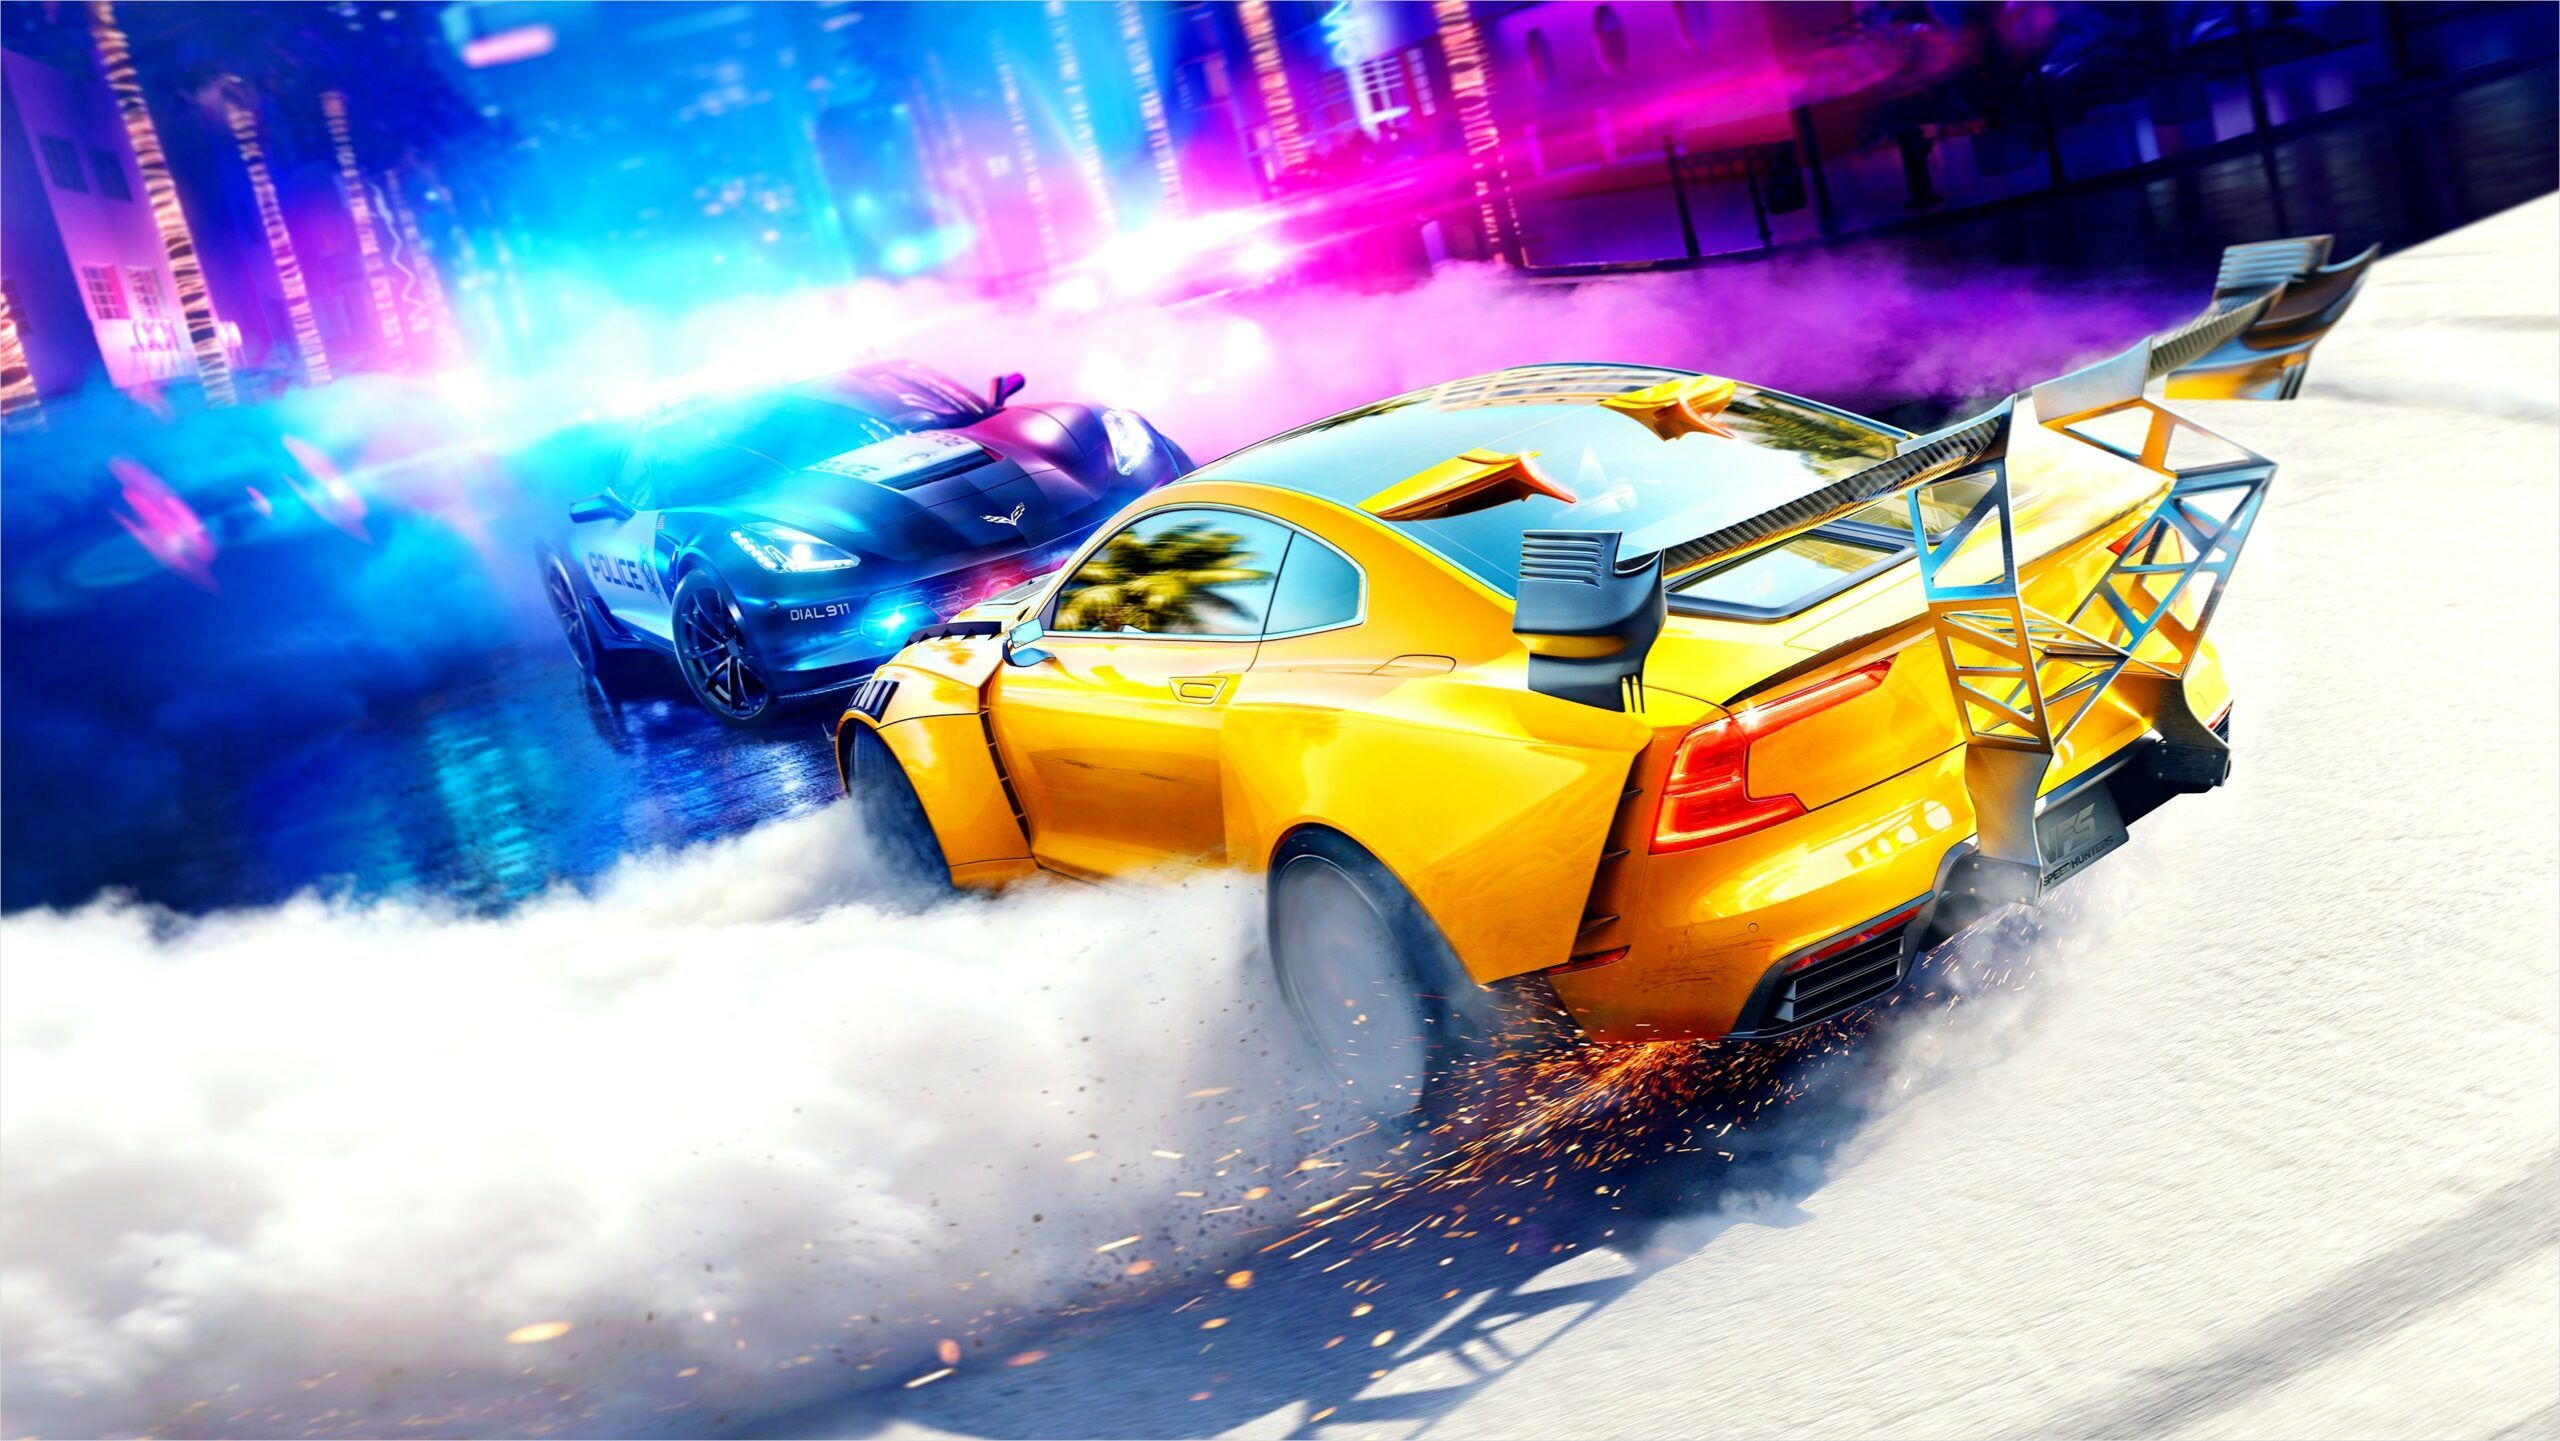 4k Need For Speed Wallpaper In 2020 Need For Speed Ghost Games